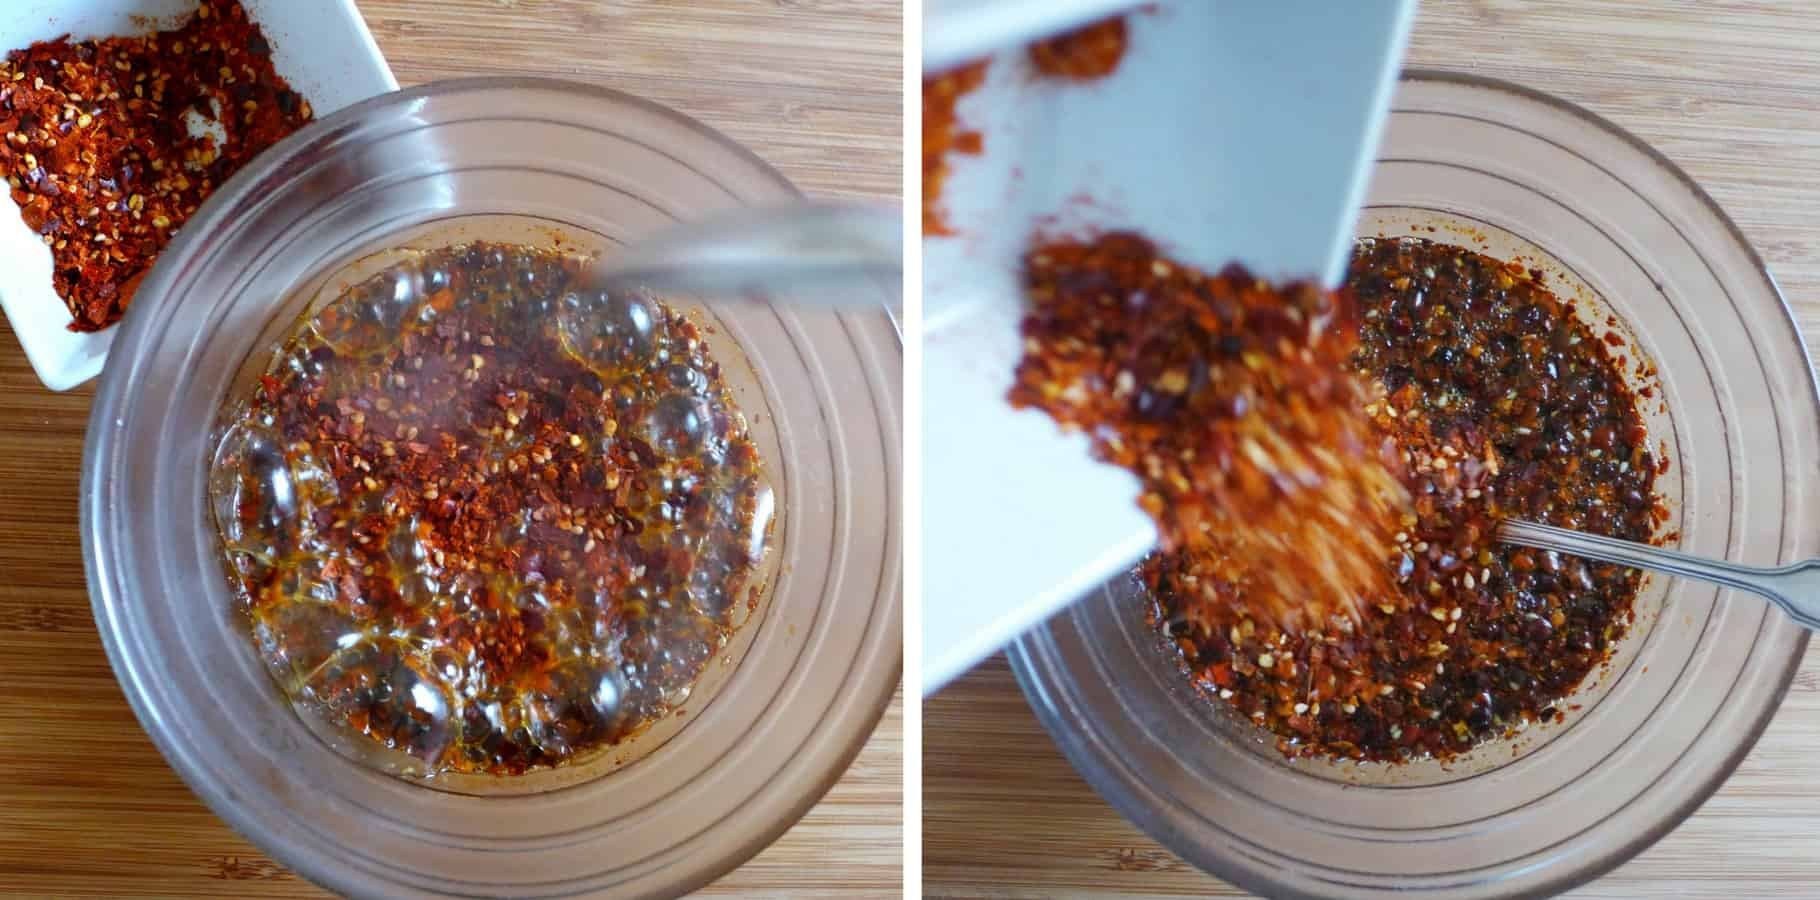 Effortless and effective recipe for homemade Chinese chilli oil, an essential condiment for Chinese cuisine. Great company for noodles, dumplings and salad.